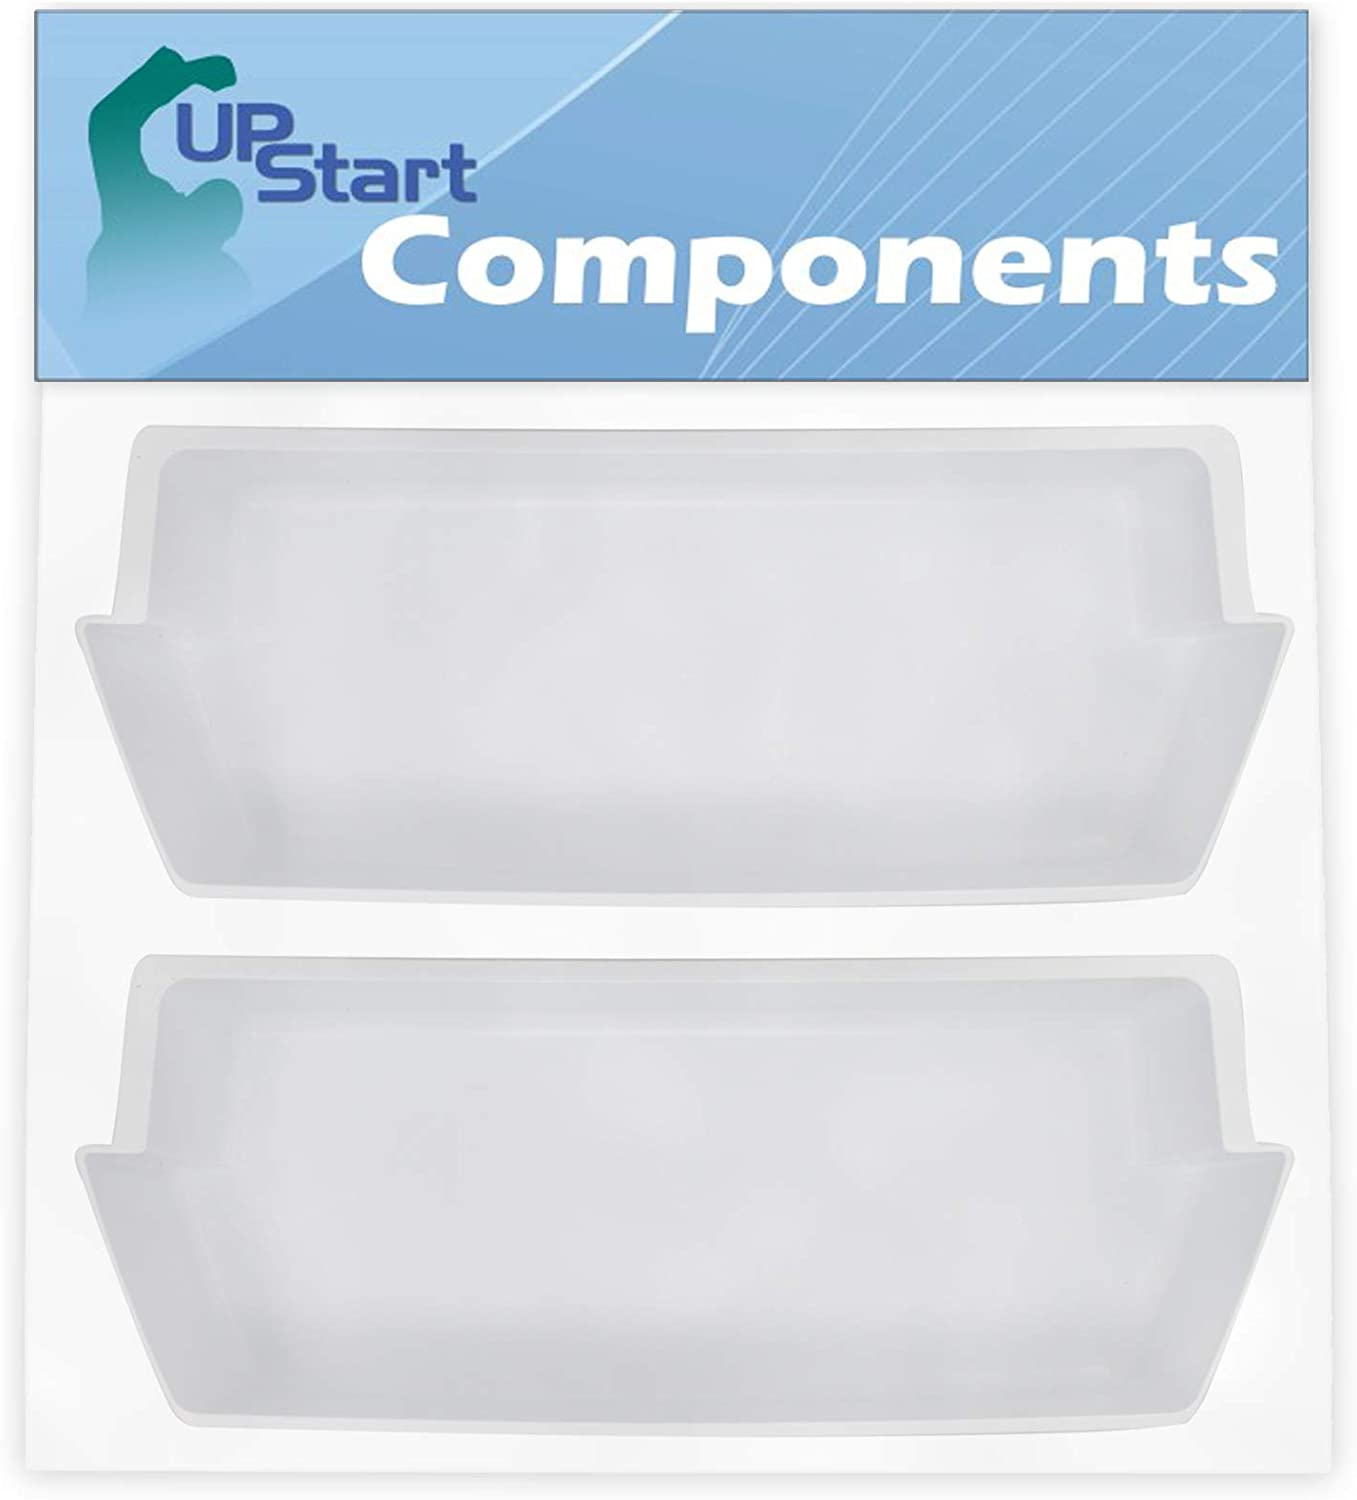 2-Pack 2187172 Refrigerator Door Bin Replacement for Whirlpool, Maytag & Amana Refrigerators - Compatible with Part Number AP6006028, 2187172K, 2187194, 2187194K, PS11739091